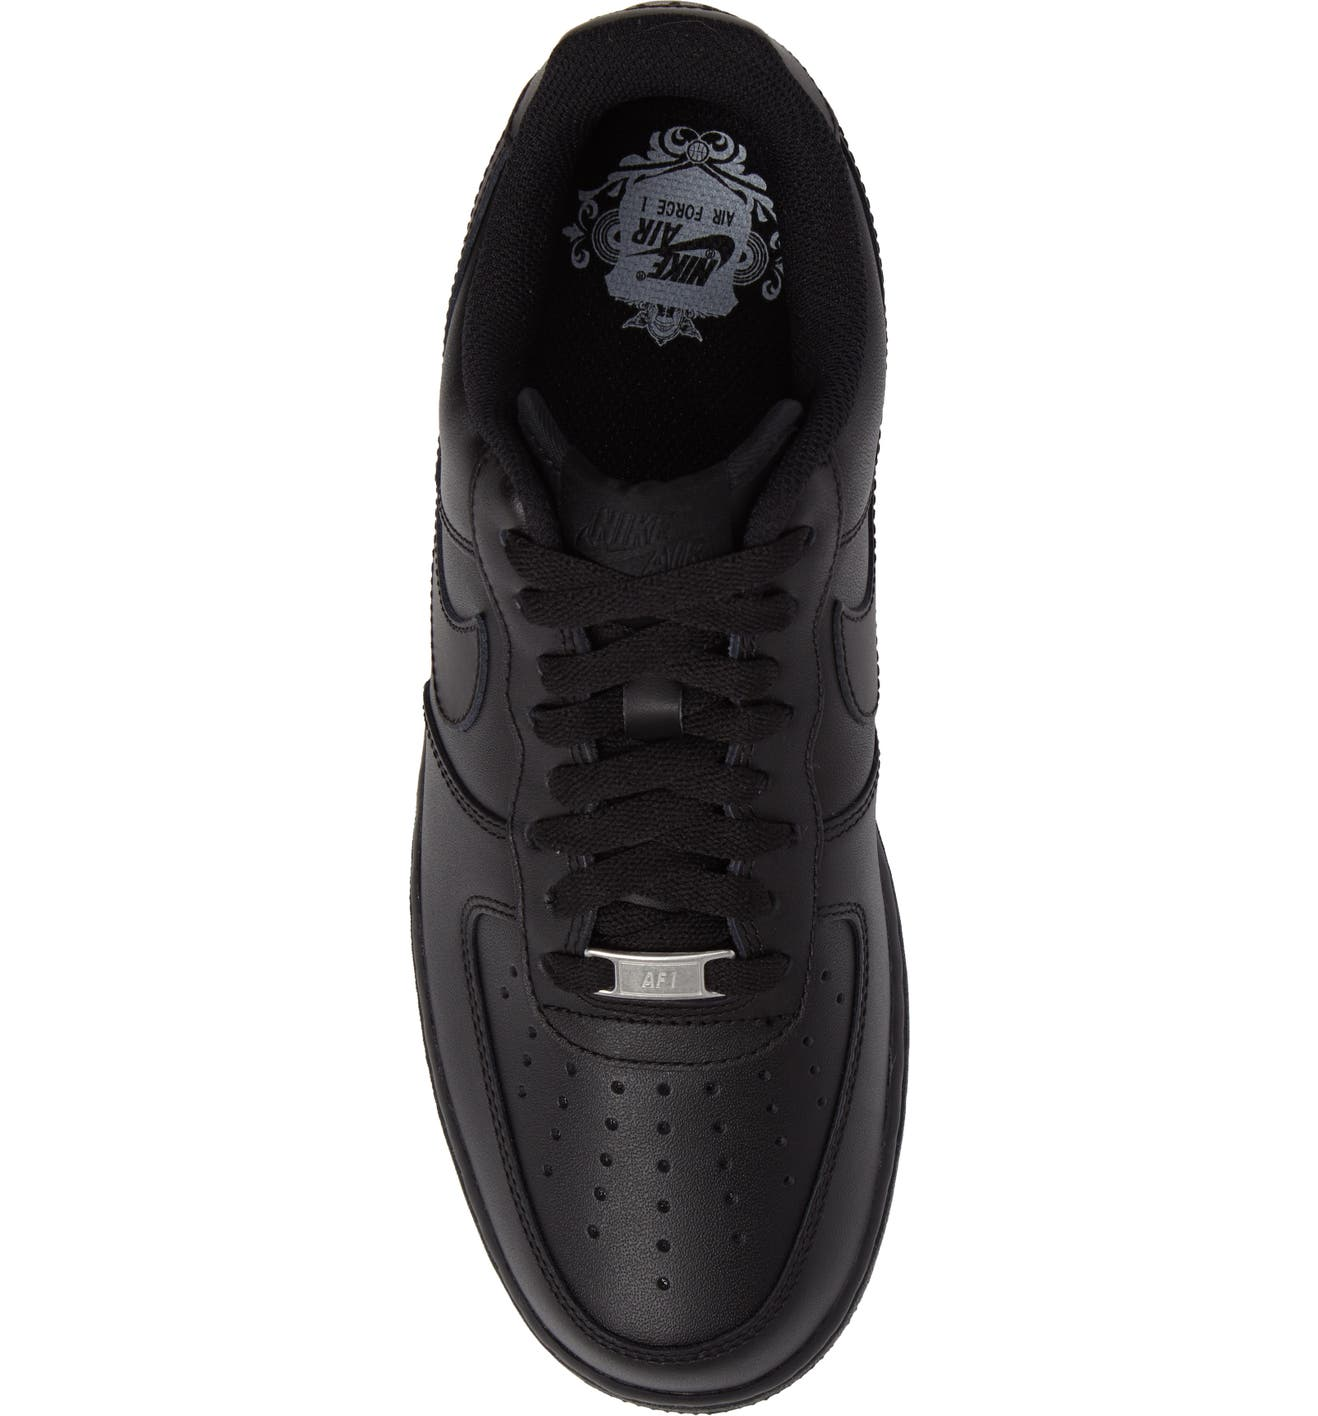 check out 49a2a 3a054 Nike Air Force 1  07 Sneaker (Men)   Nordstrom